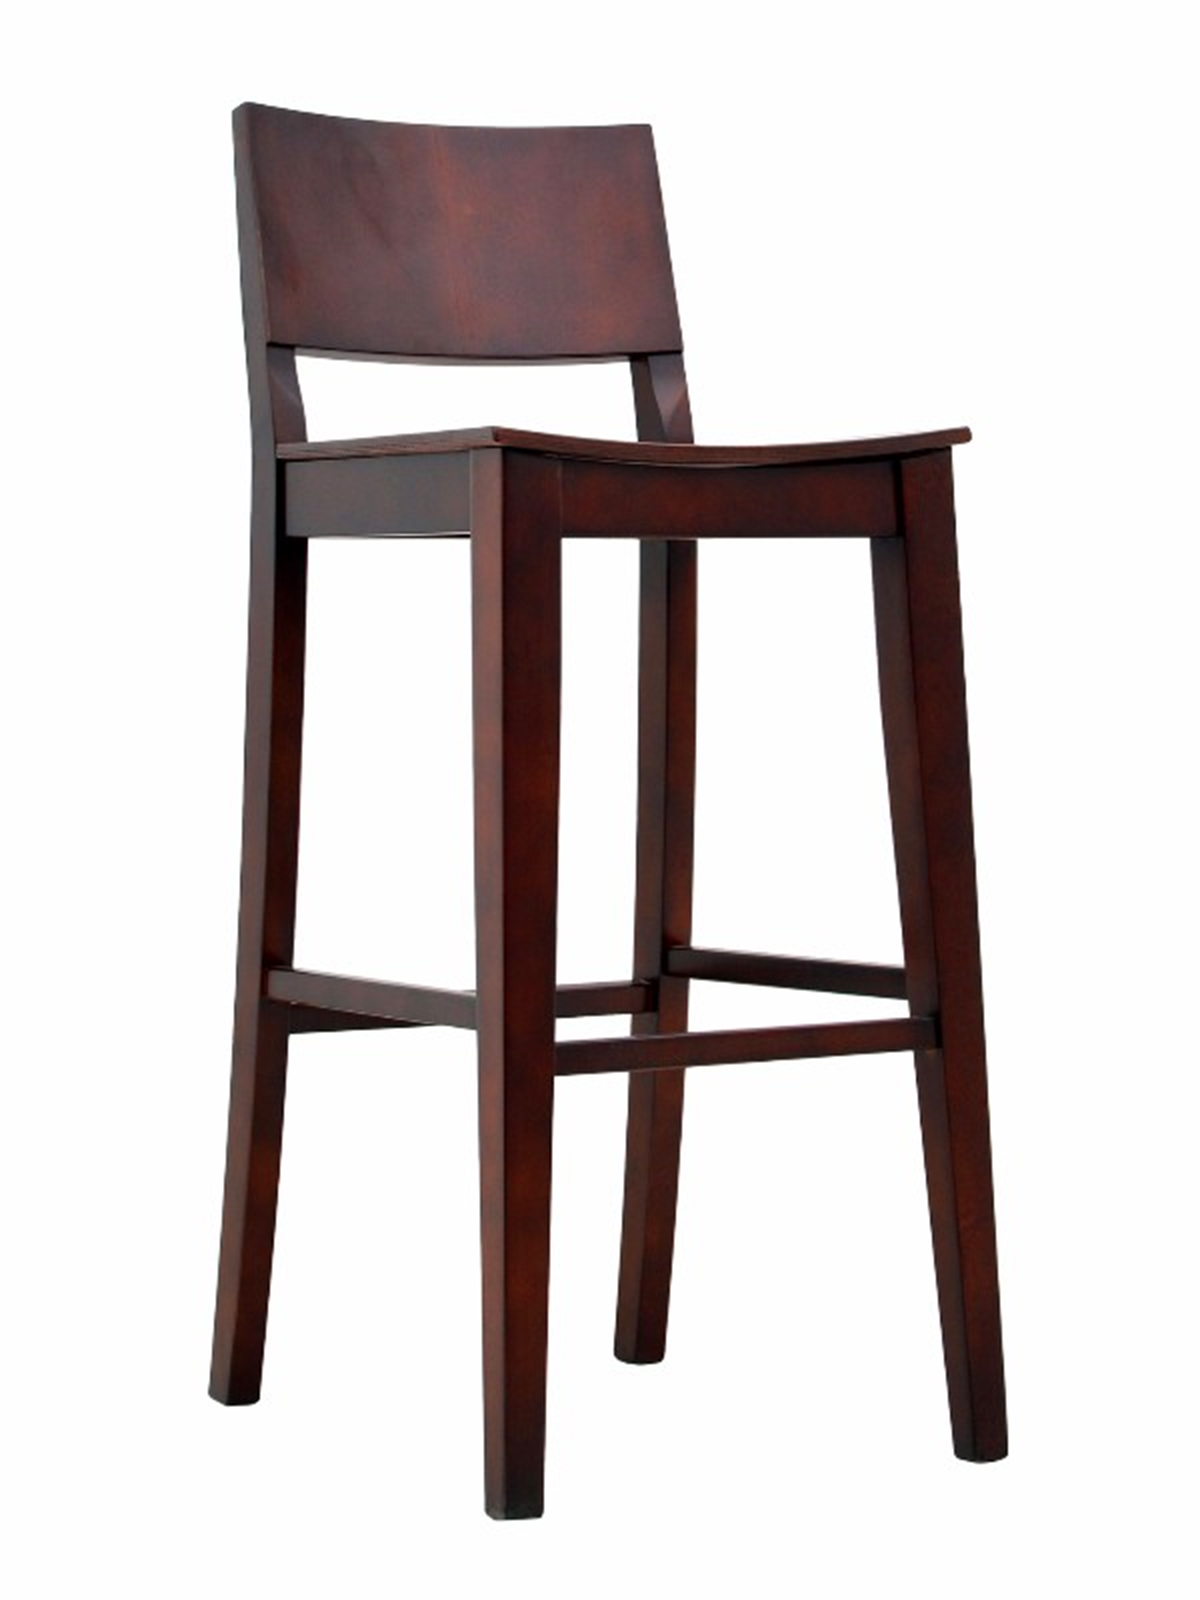 Oak Street WB-305-M bar stool, indoor